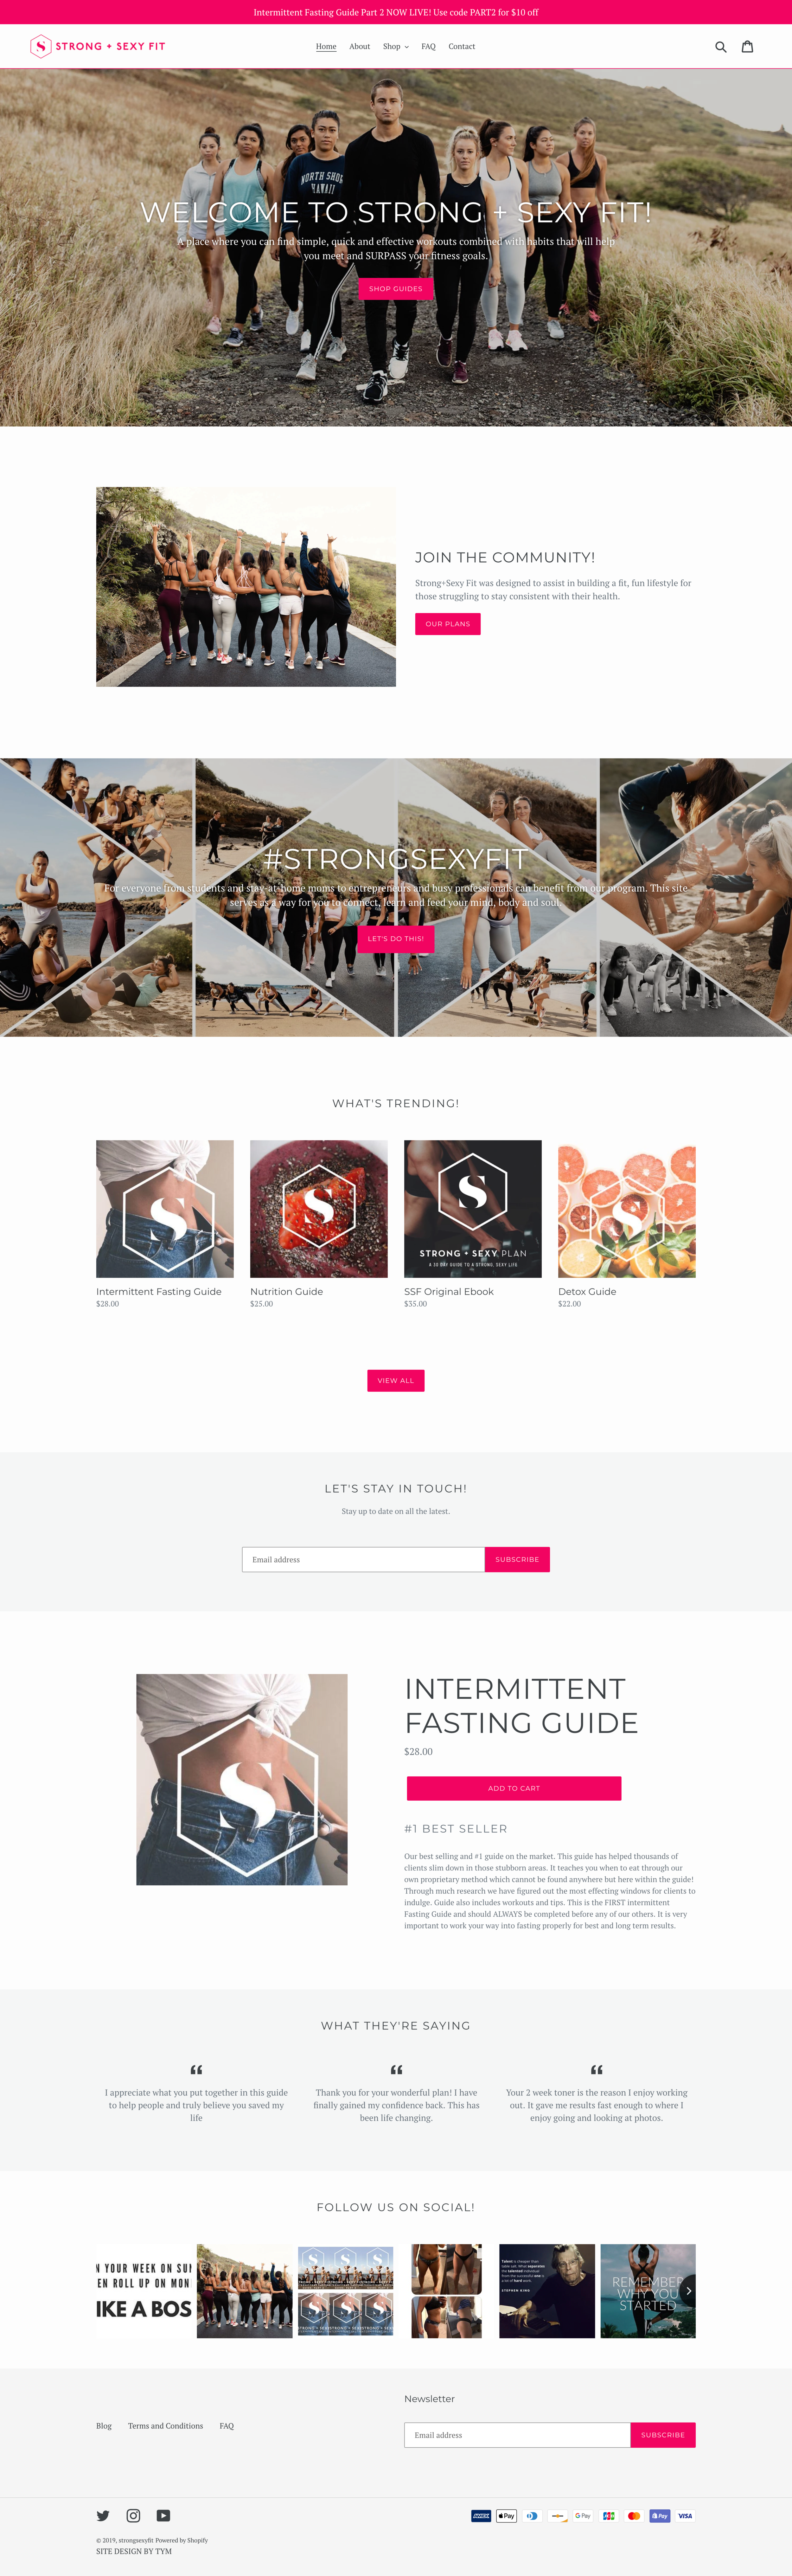 screencapture-strongandsexy-fit-2019-08-09-13_18_14 (1).png